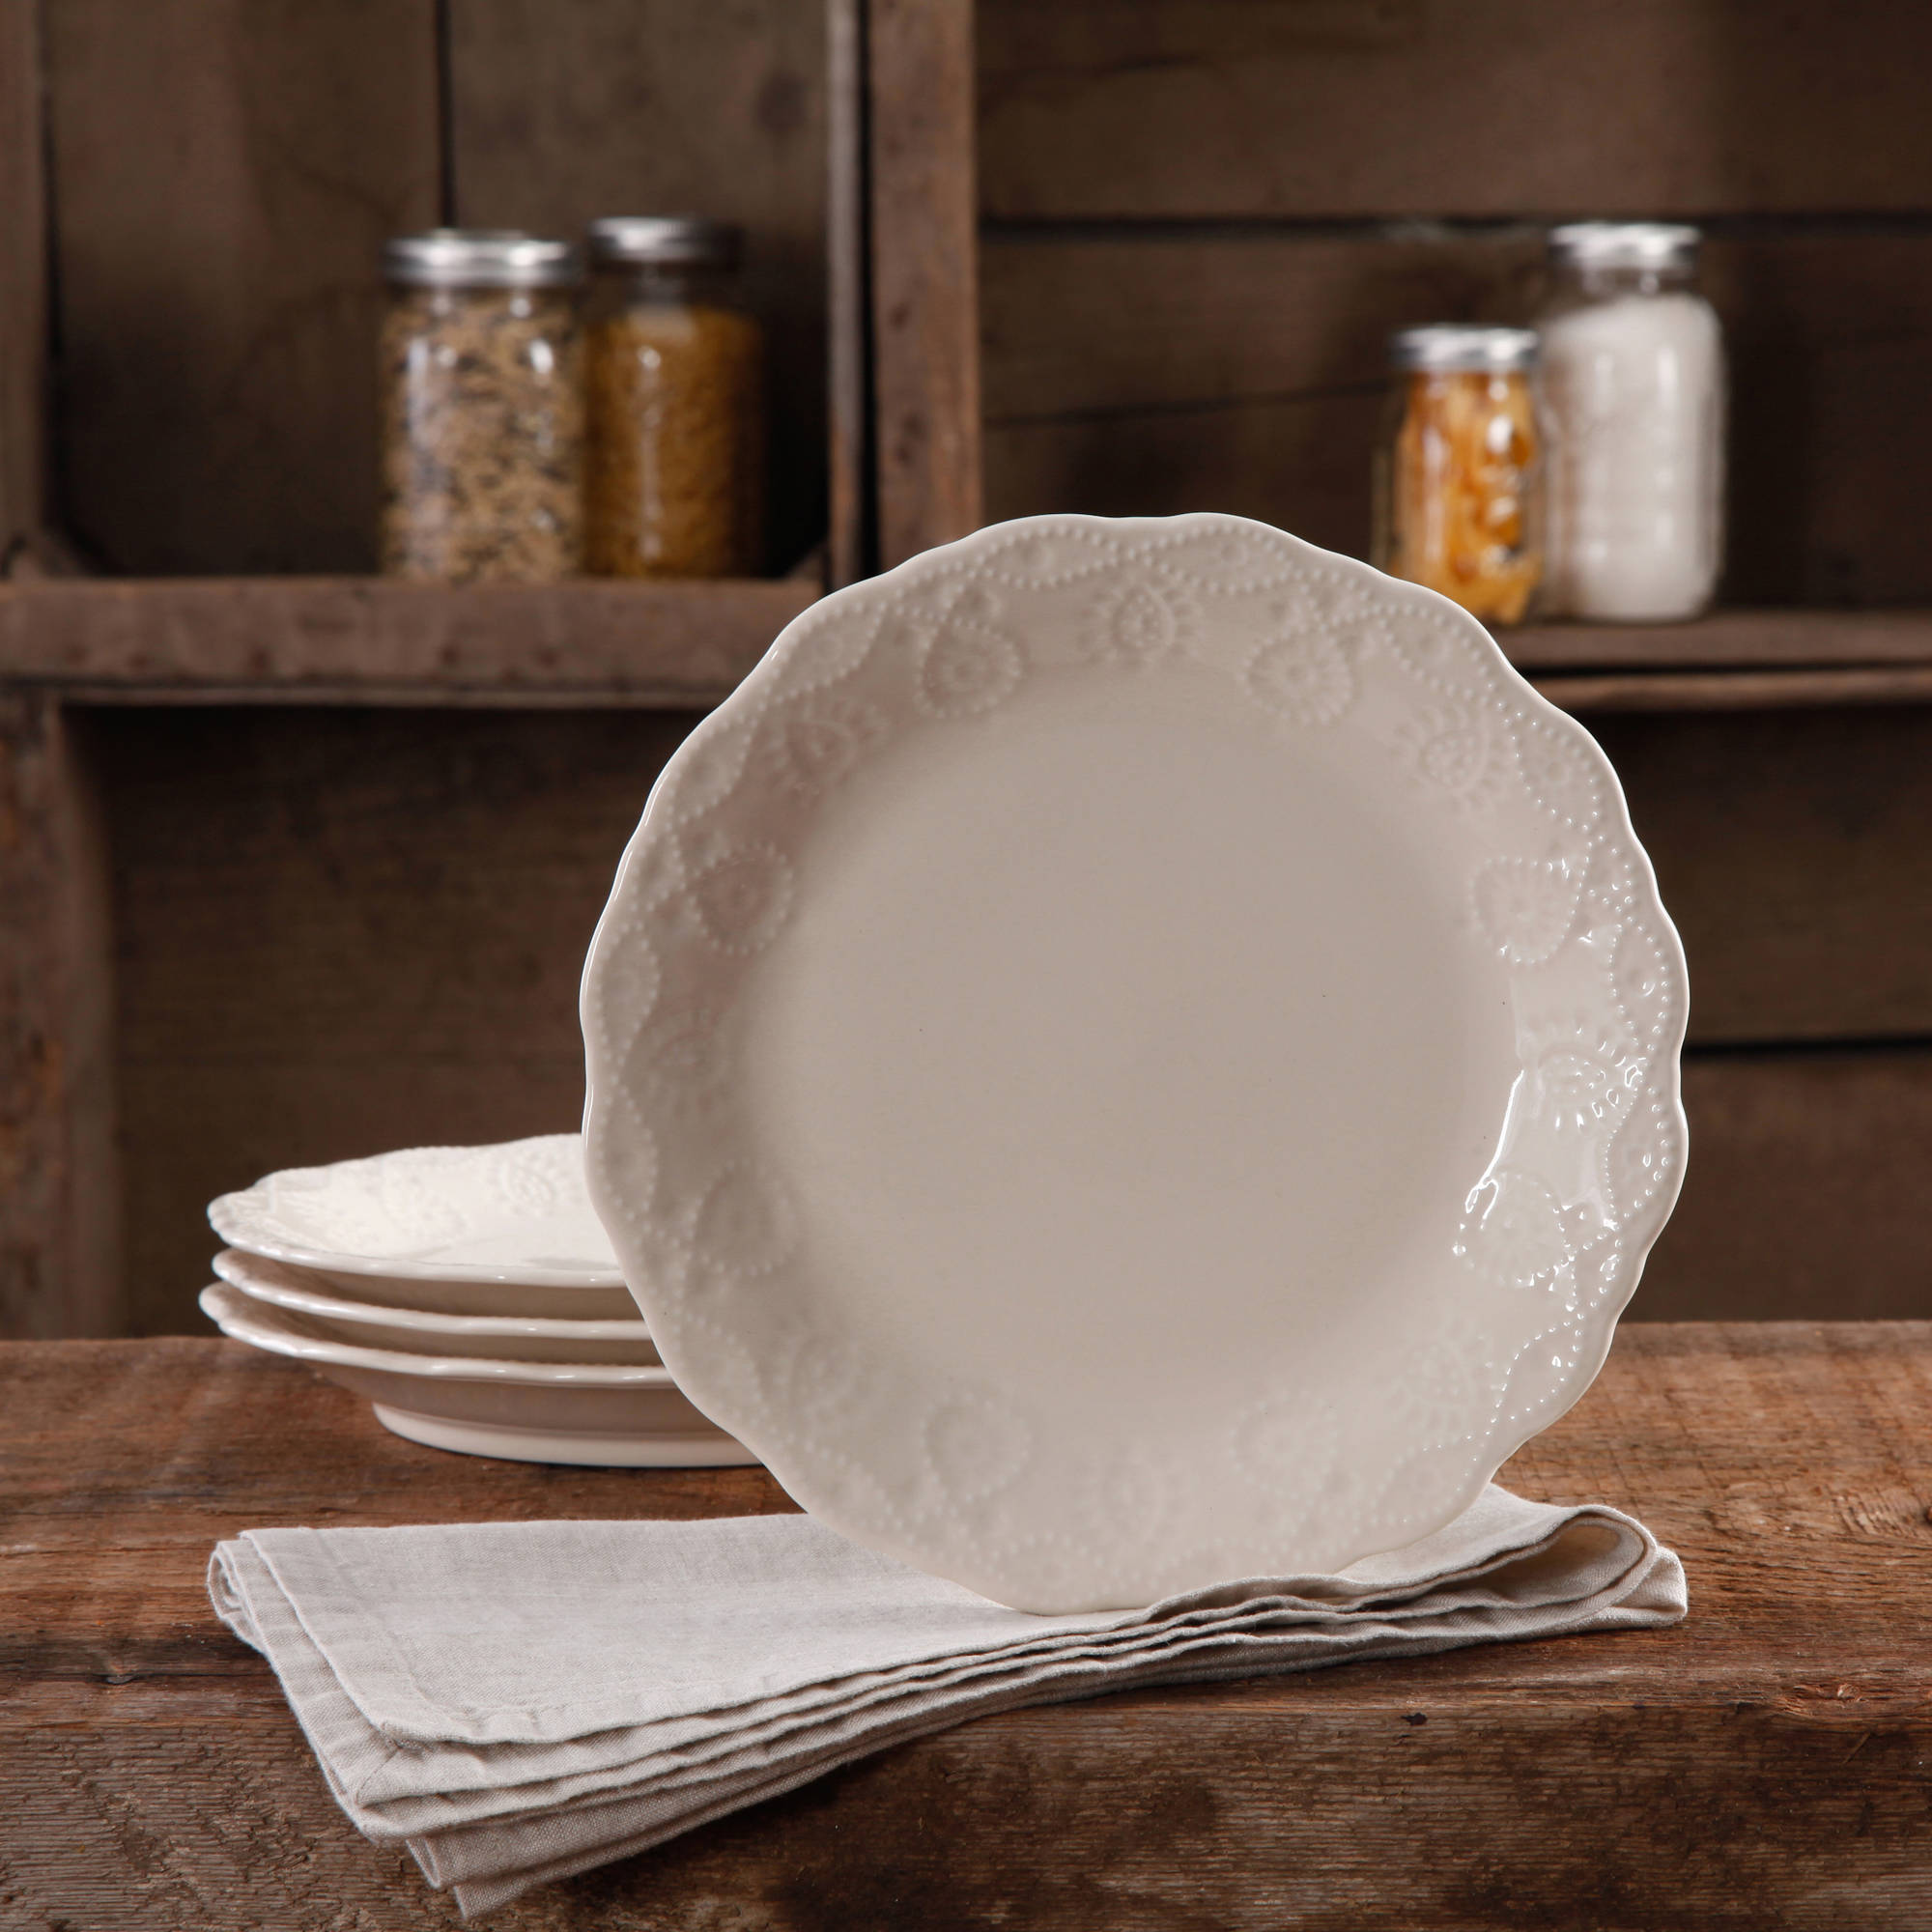 The Pioneer Woman Cowgirl Lace Transparent Glaze 4-Pack Dessert Plates